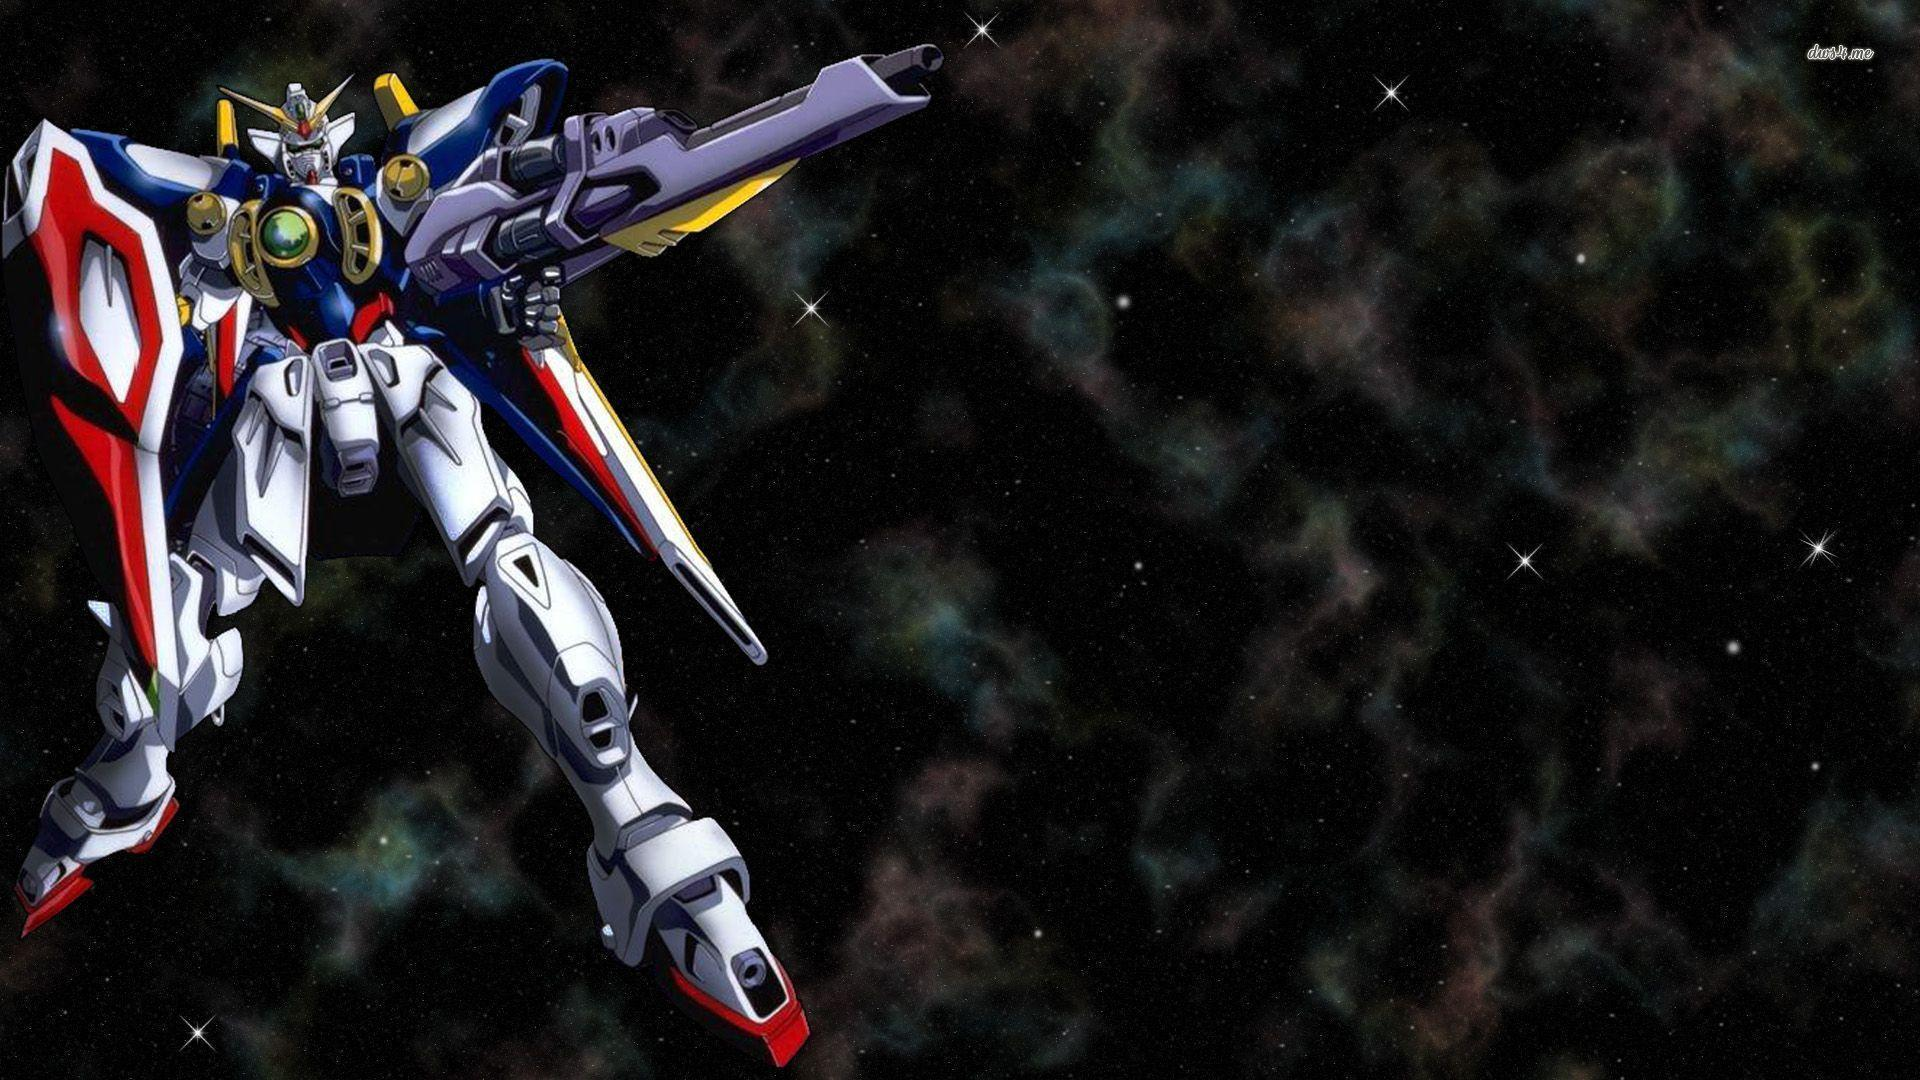 Gundam Anime Wallpapers Full Hd For Android Apk Download